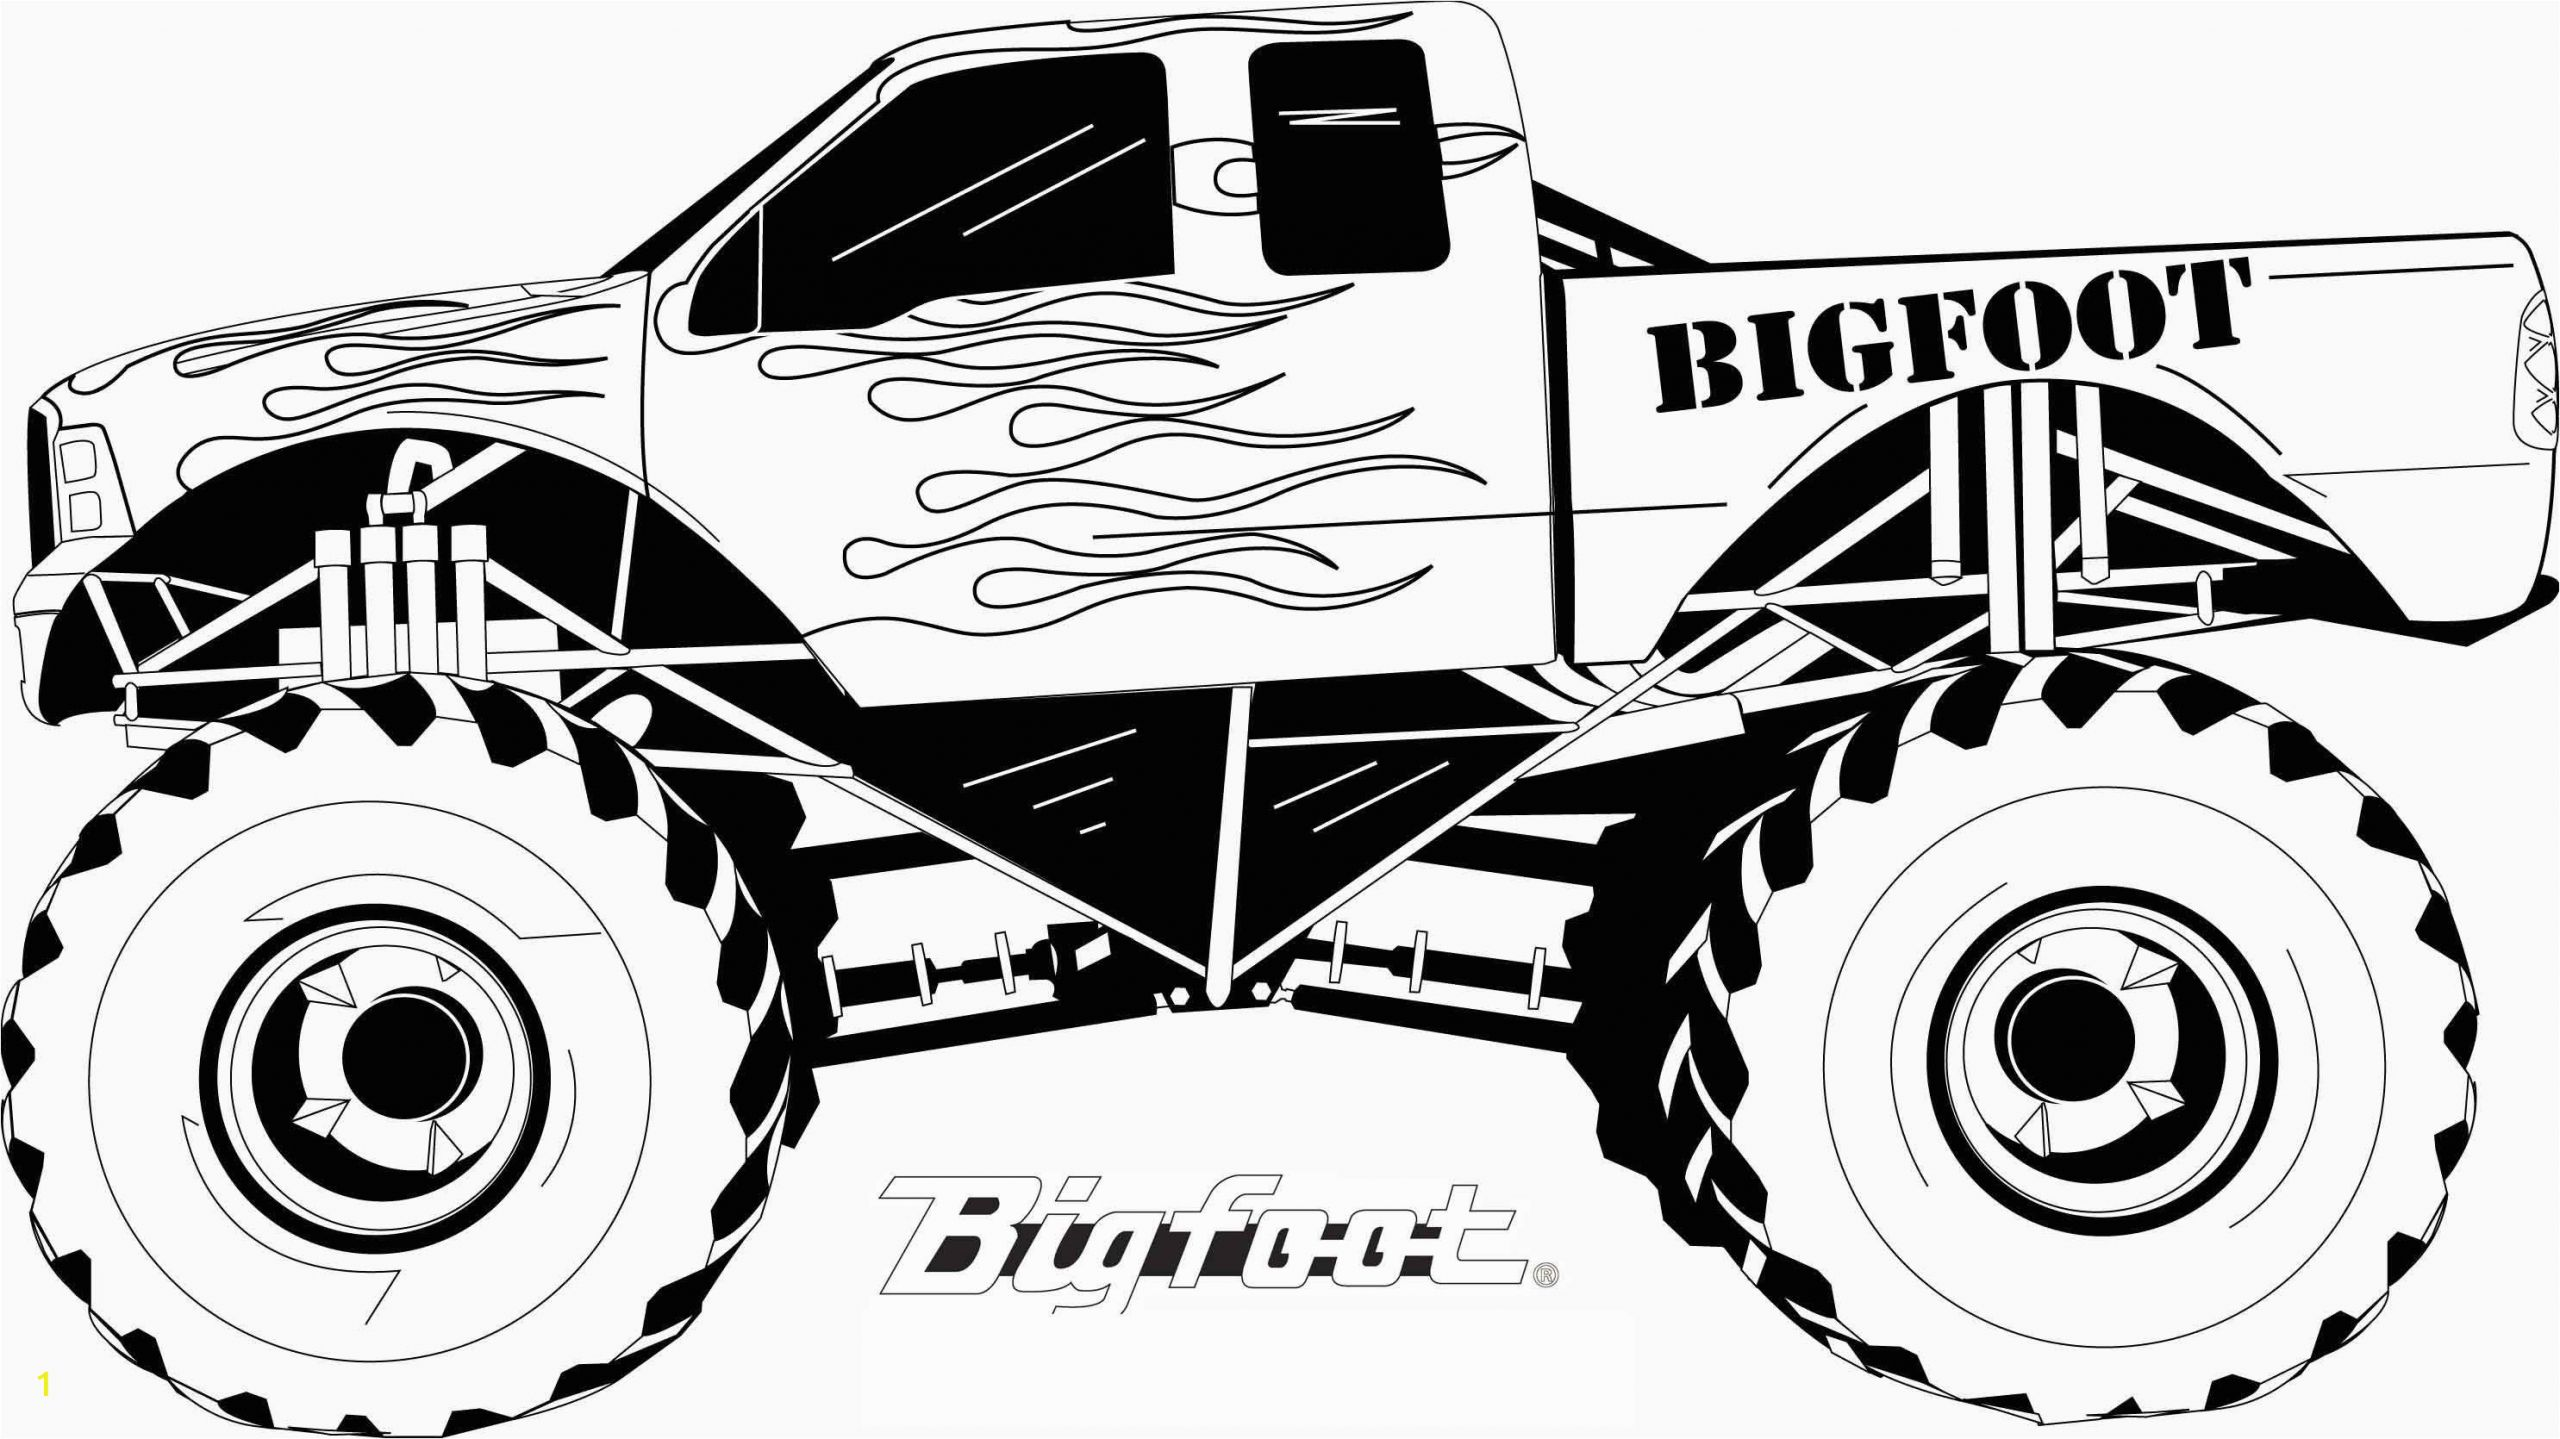 insider coloring pages trucks monster to print for kids coloring bigfoot car